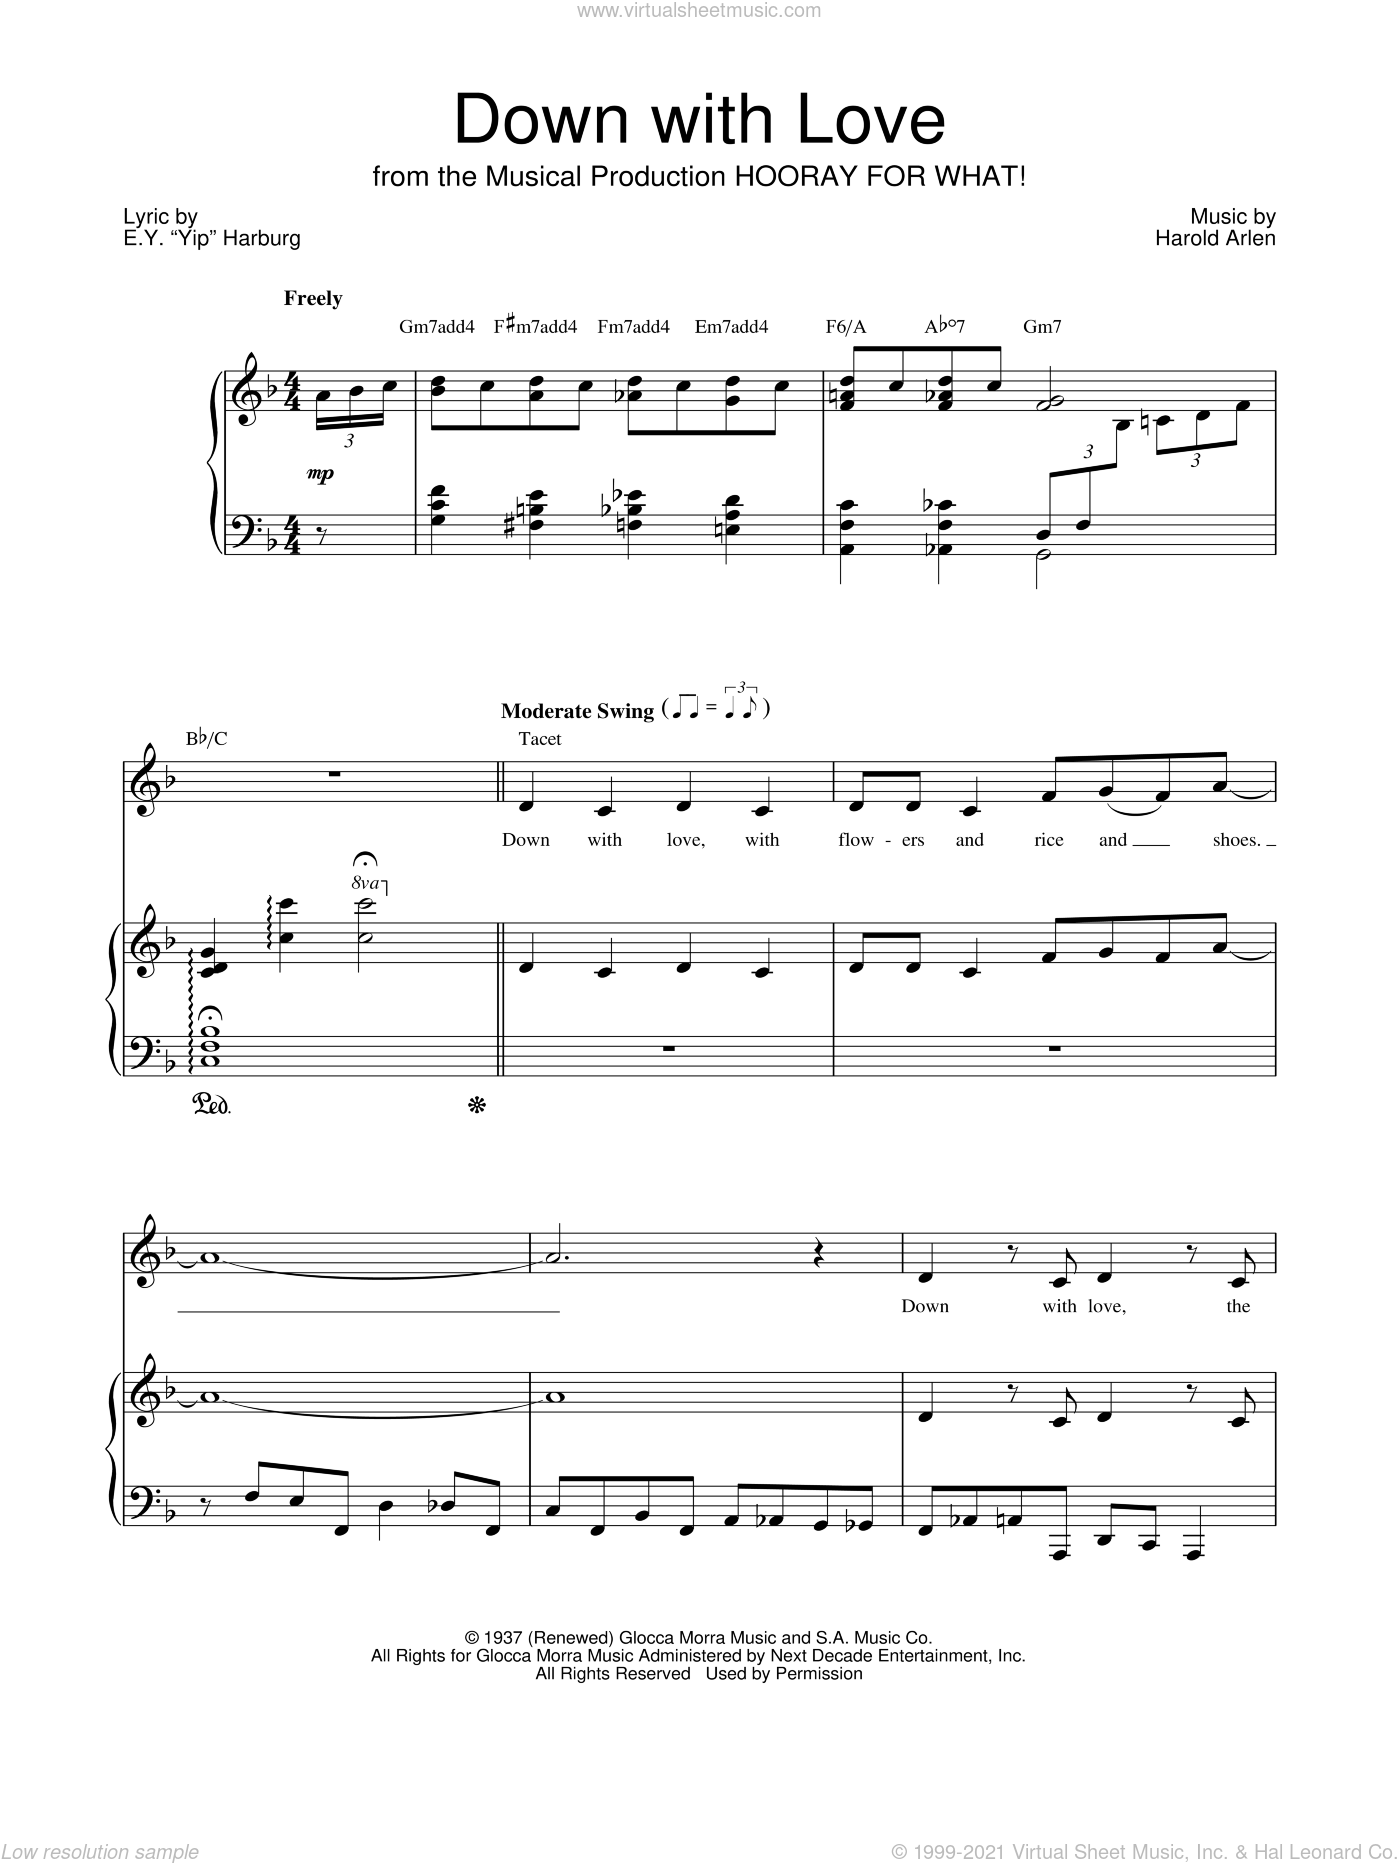 Down With Love sheet music for voice, piano or guitar by Barbra Streisand, E.Y. Harburg and Harold Arlen, intermediate skill level